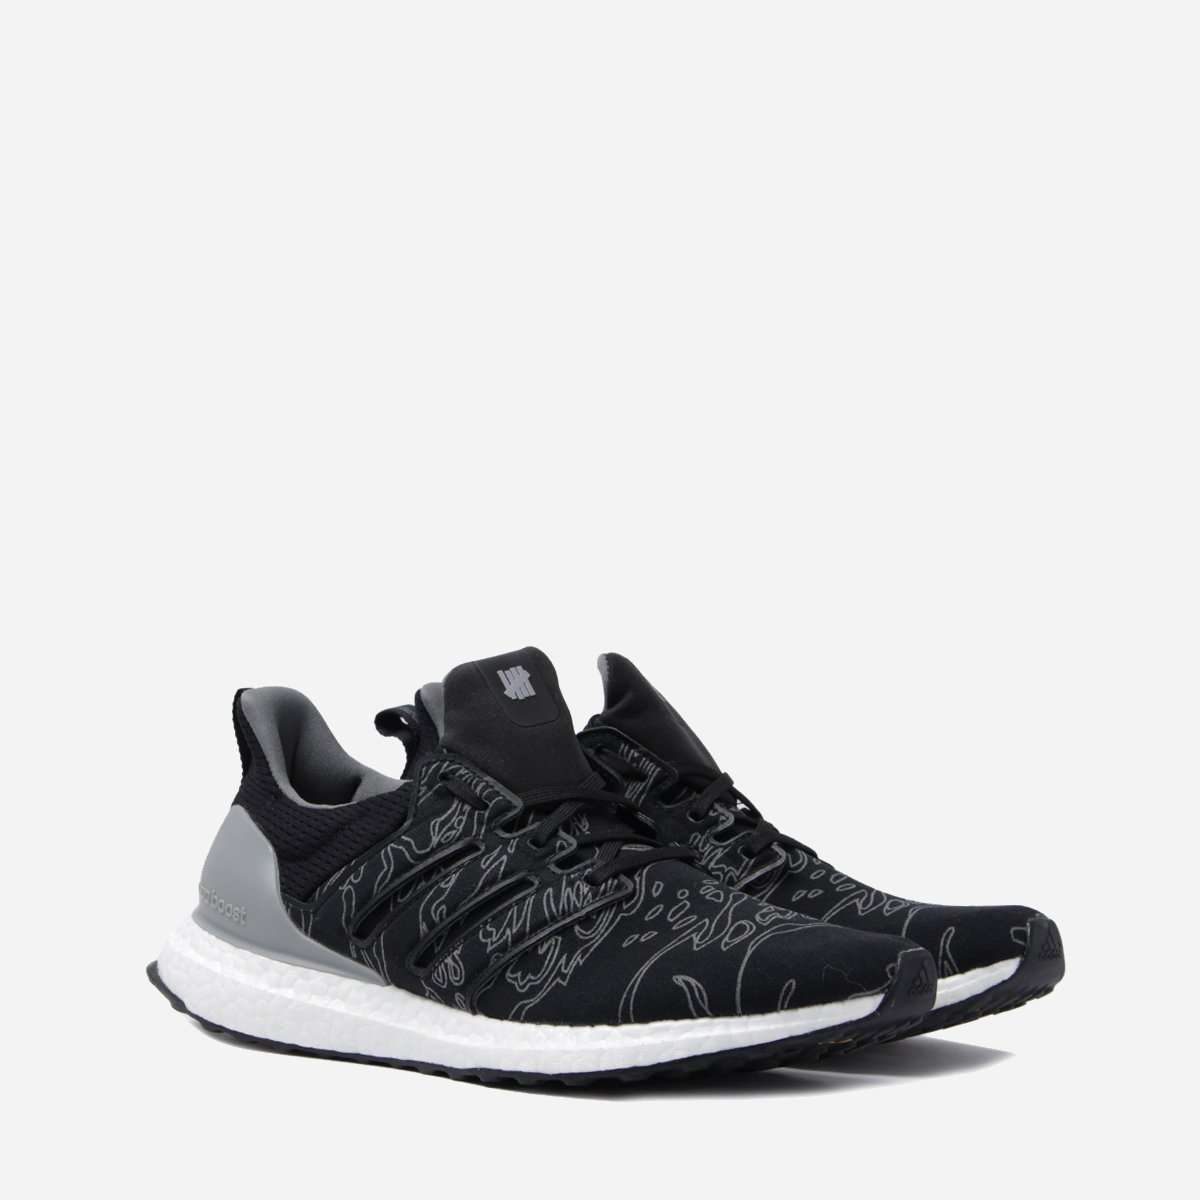 size 40 36ff7 276e1 adidas x Undefeated Ultraboost | The Hip Store